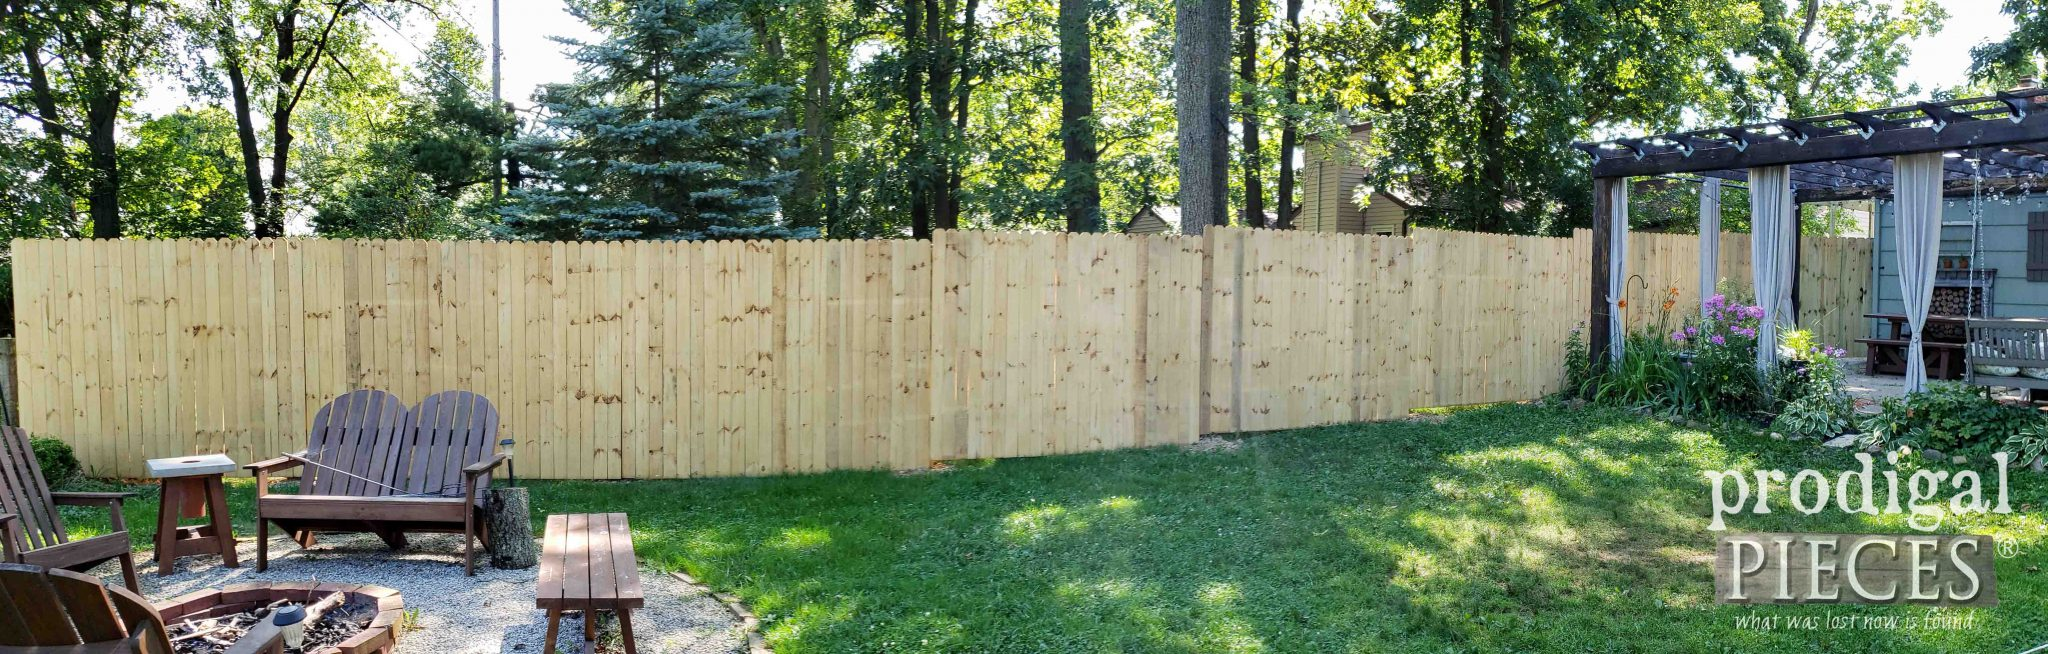 Back Yard Privacy Fence Before Stain by Prodigal Pieces | prodigalpieces.com #prodigalpieces #diy #backyard #outdoor